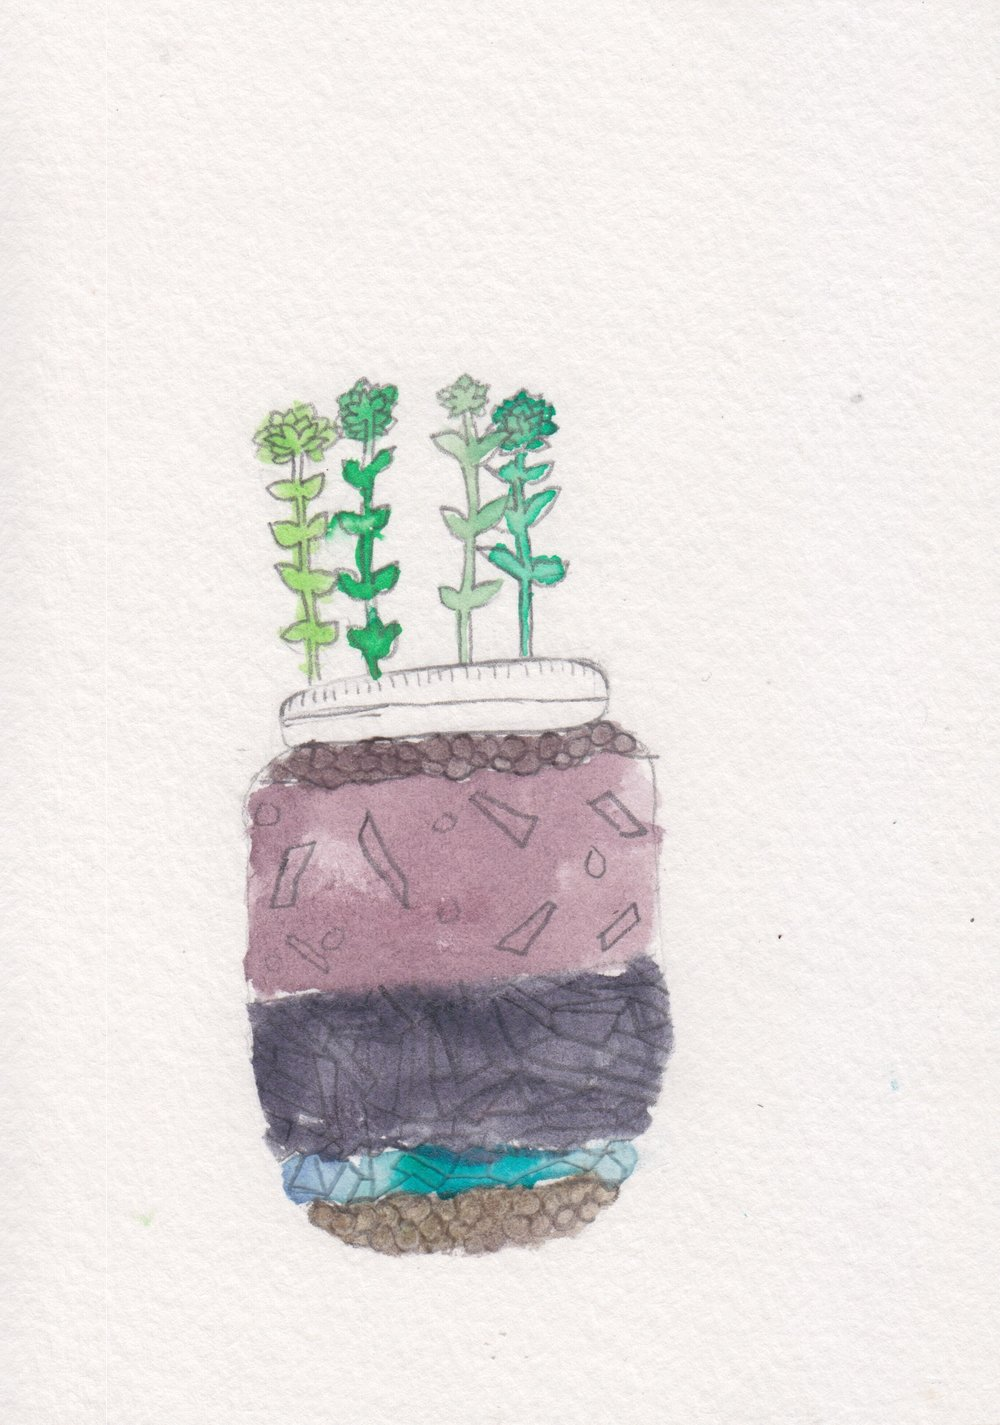 centro_watercolor terrarium_MariaRamos02.jpeg